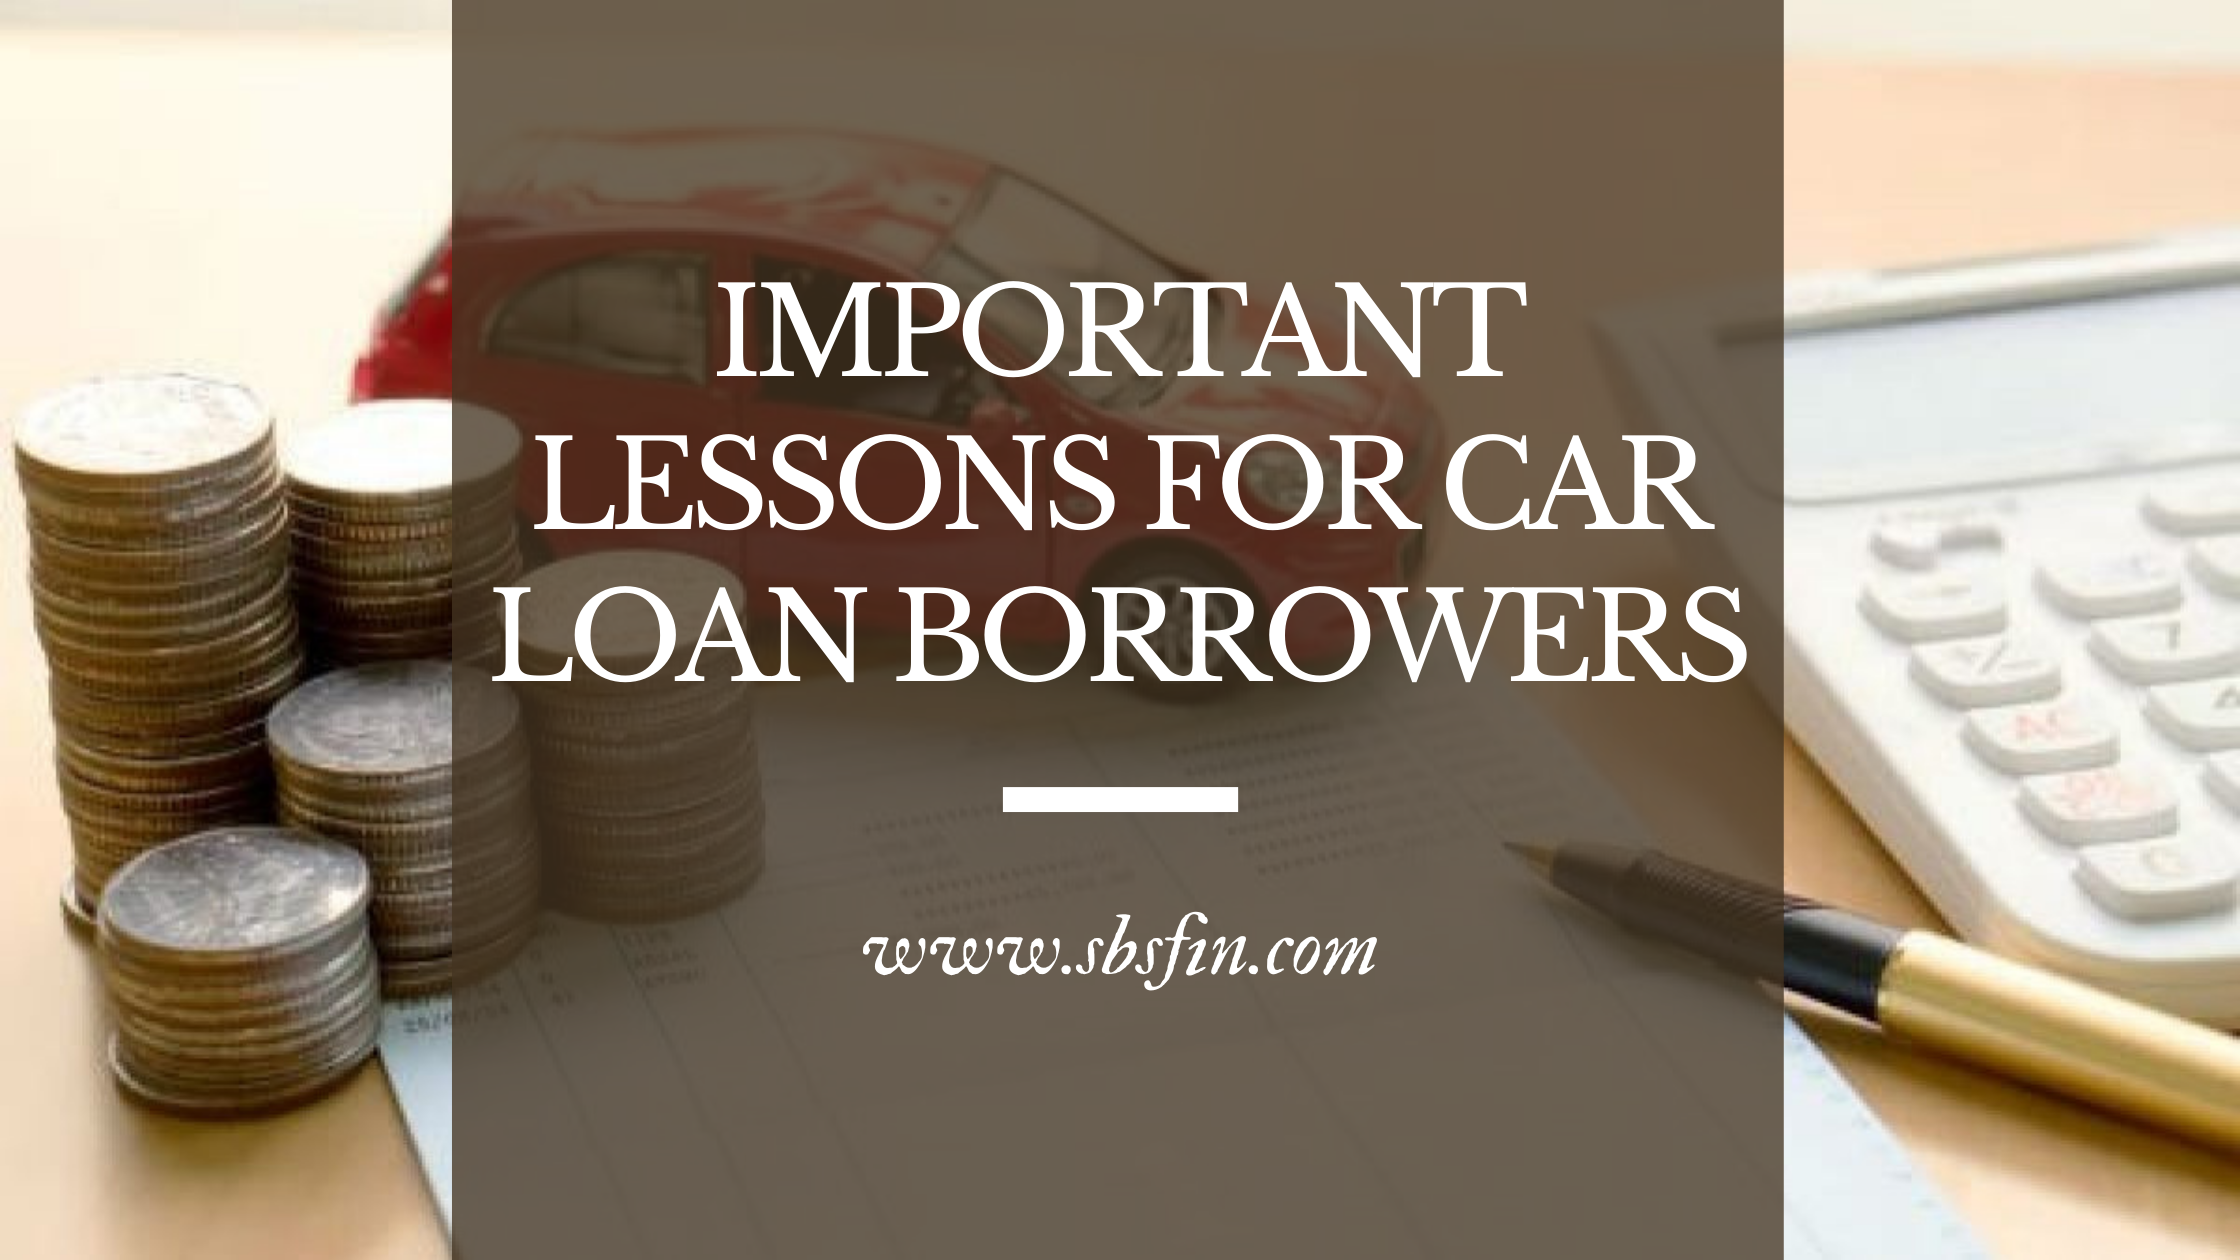 5 Most Important Lessons for Car Loan Borrowers